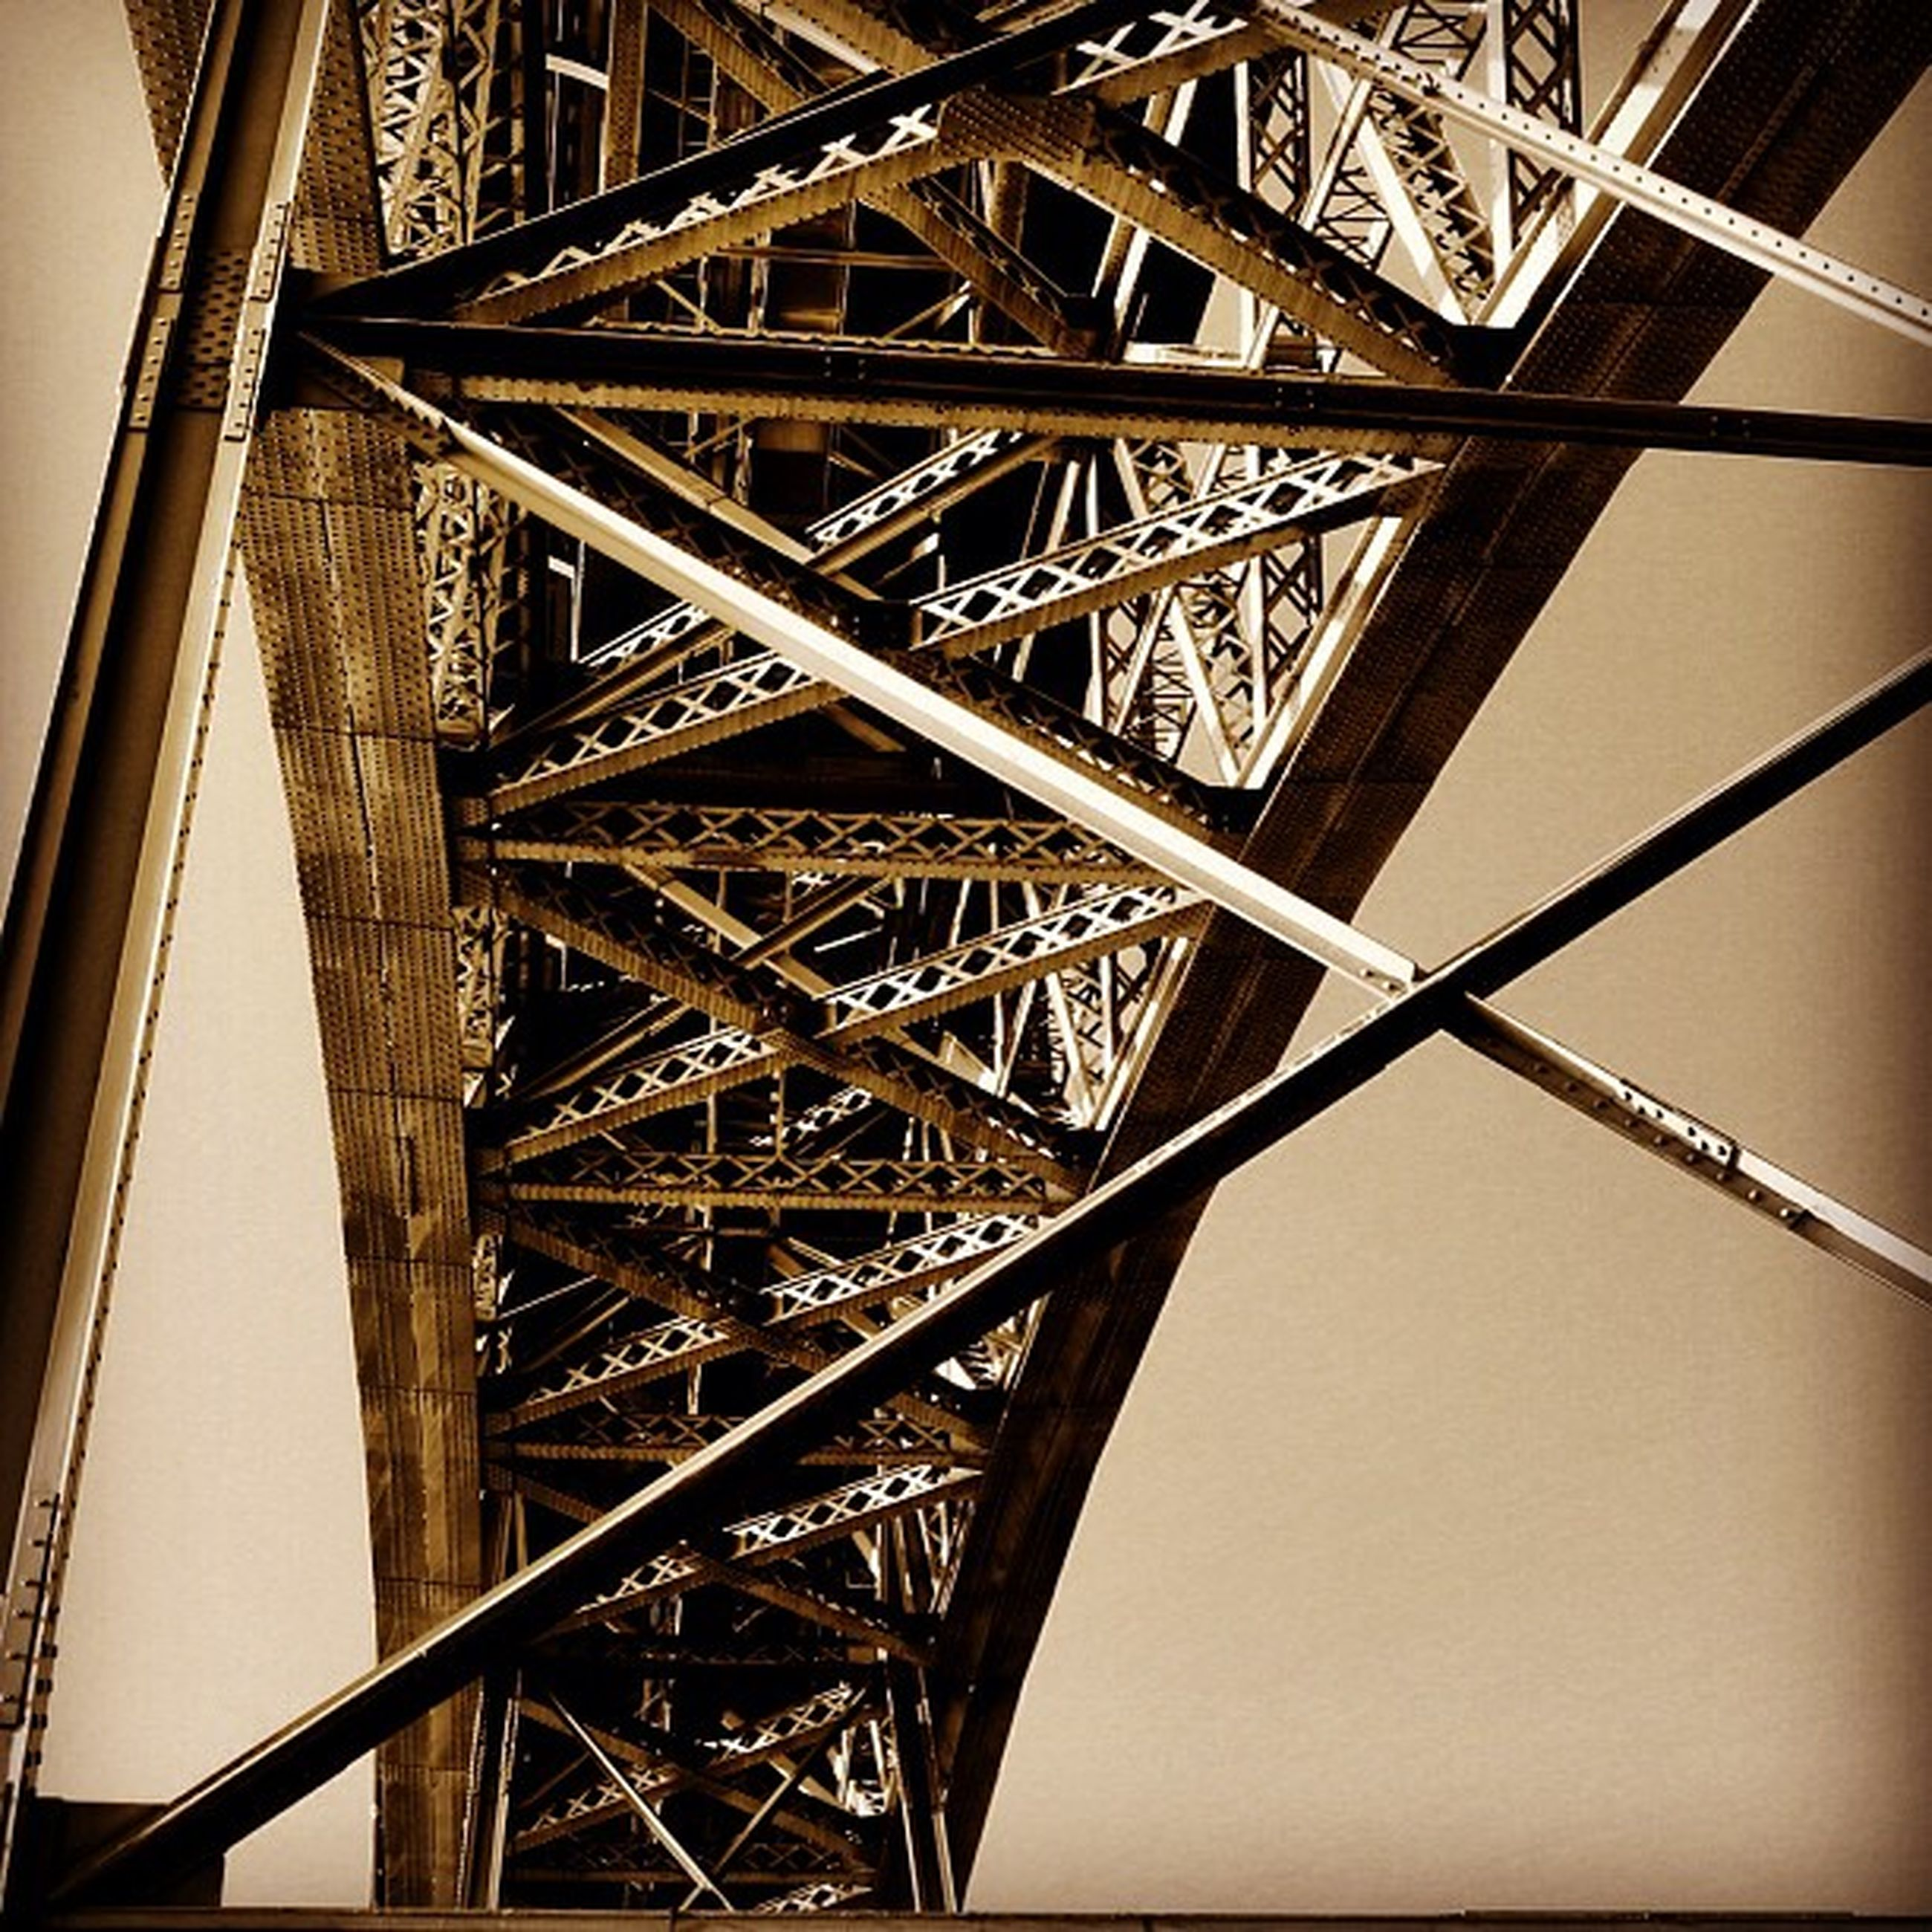 built structure, architecture, metal, low angle view, engineering, connection, metallic, eiffel tower, international landmark, bridge - man made structure, tower, famous place, clear sky, travel destinations, grid, tall - high, sky, no people, capital cities, outdoors